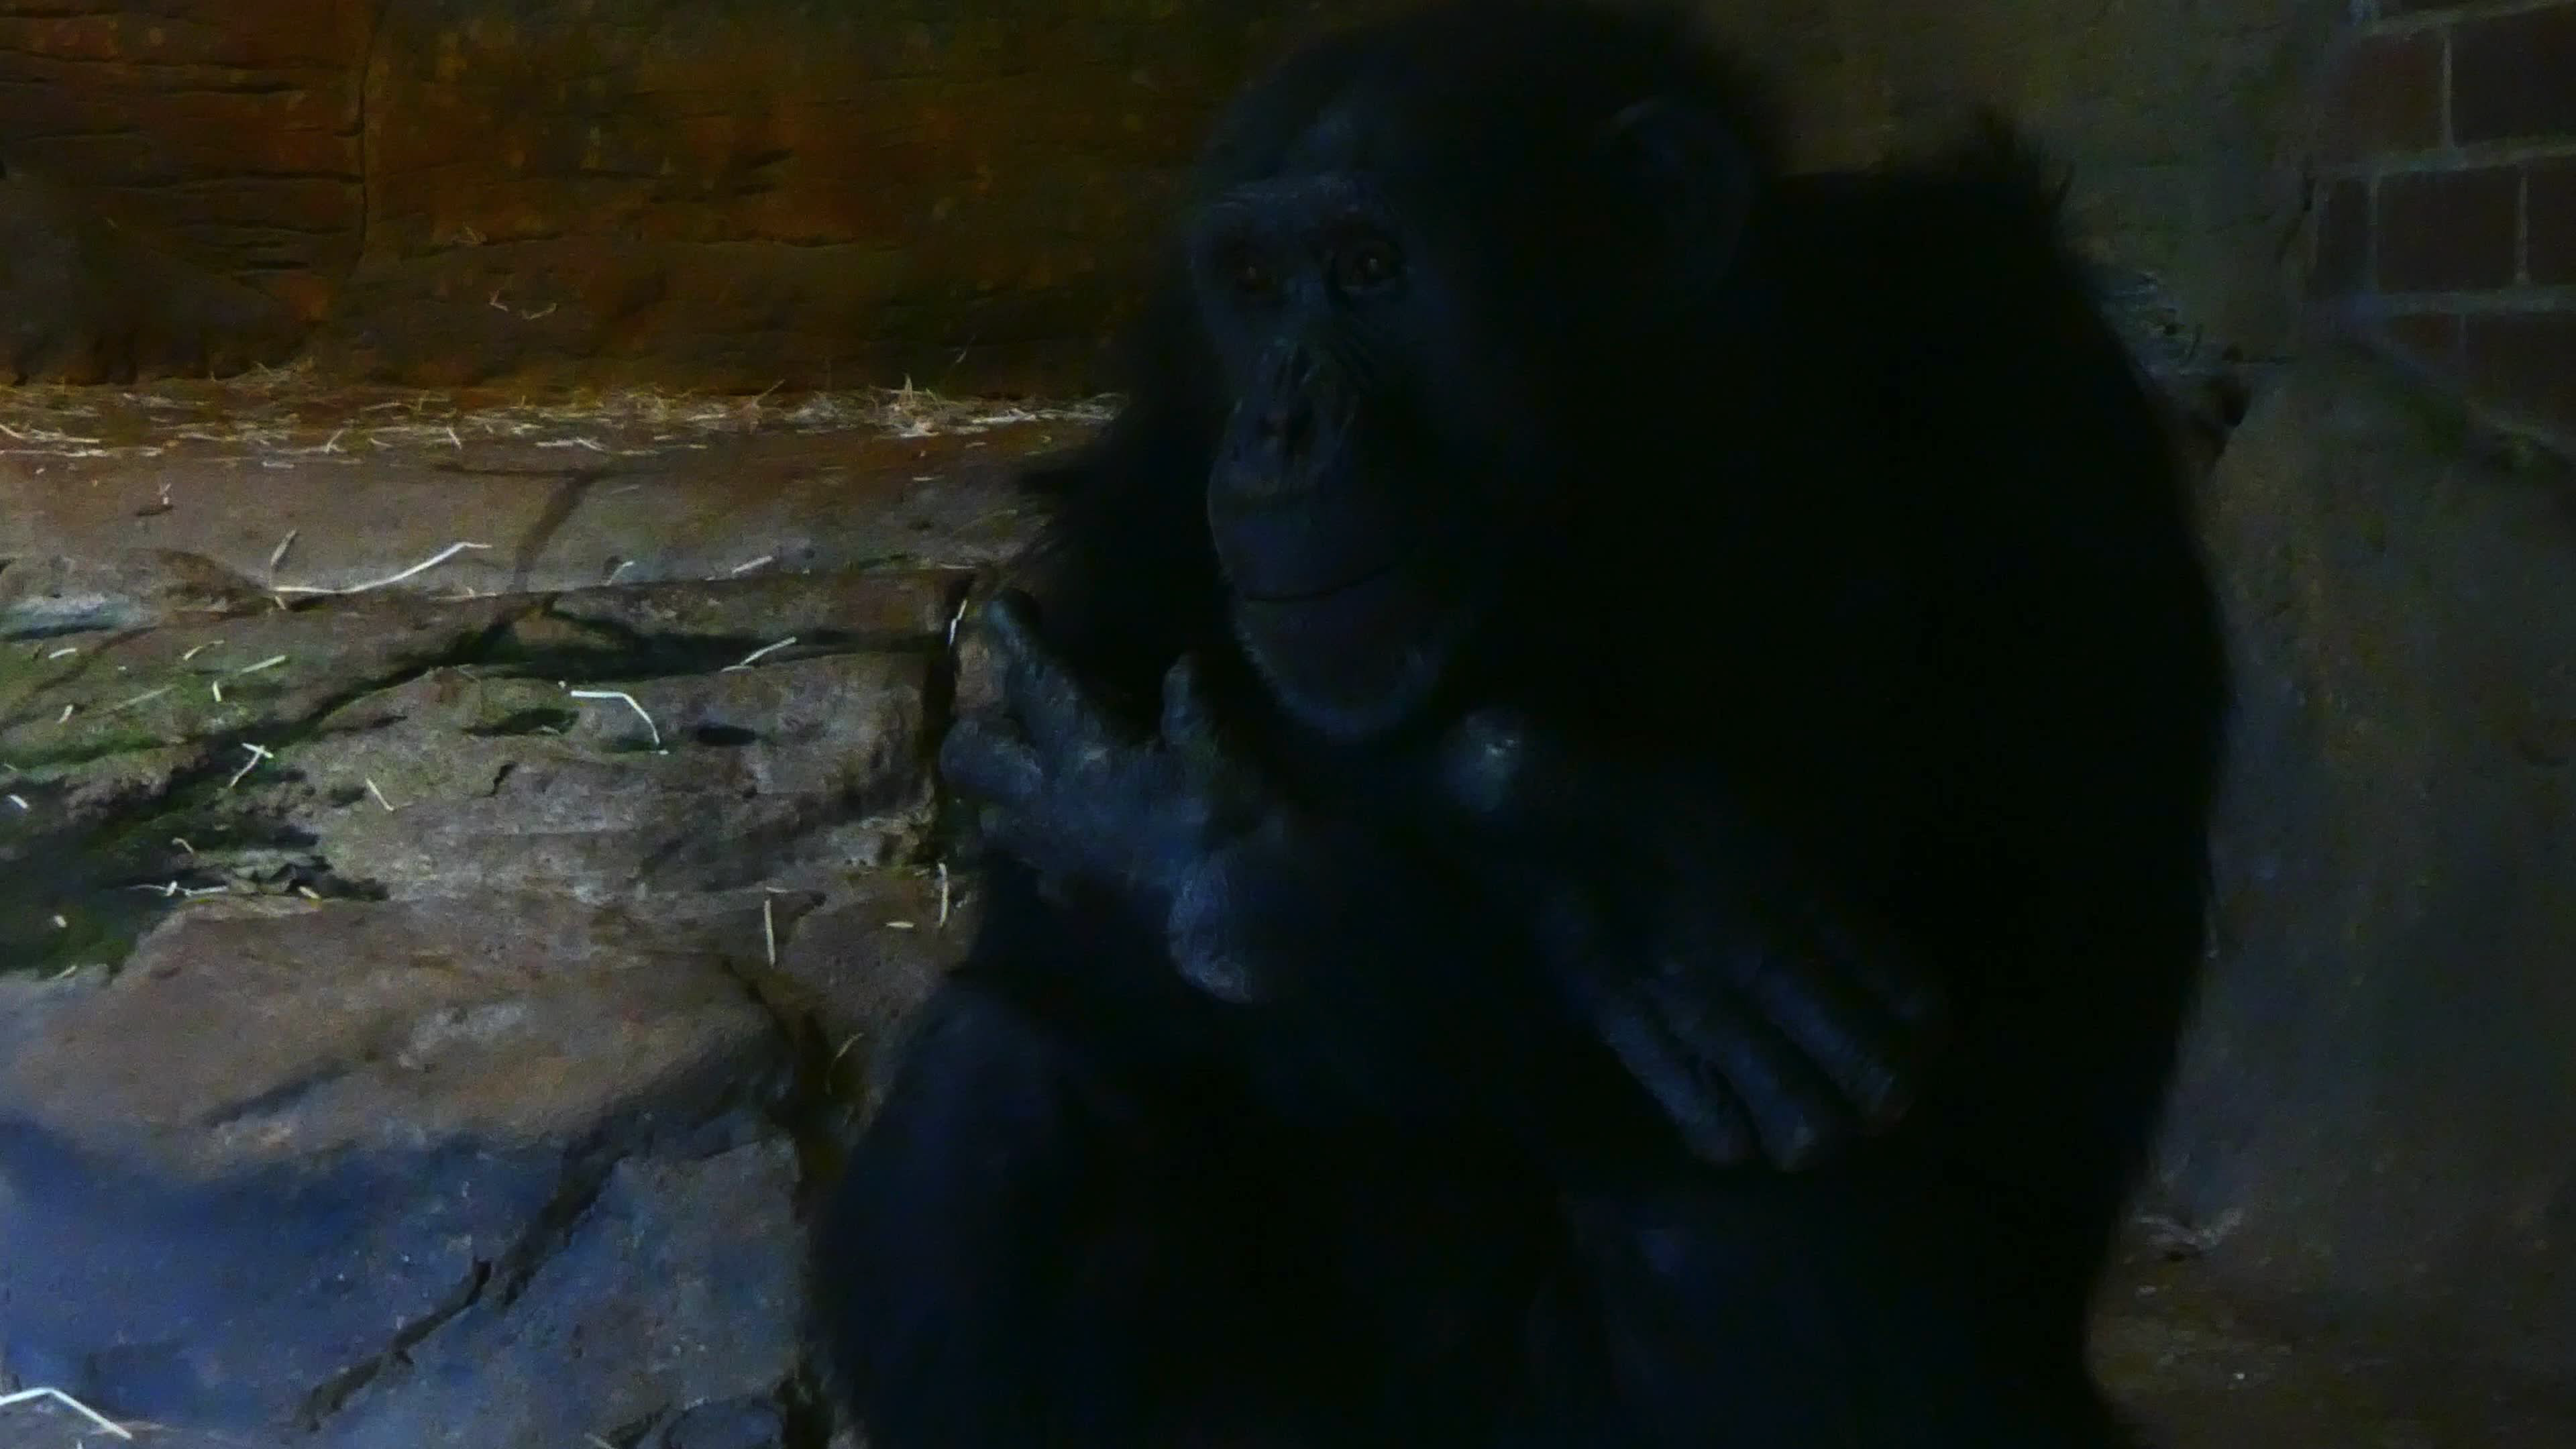 Close Shot of Gorilla at Zoo 4K - Free HD Video Clips